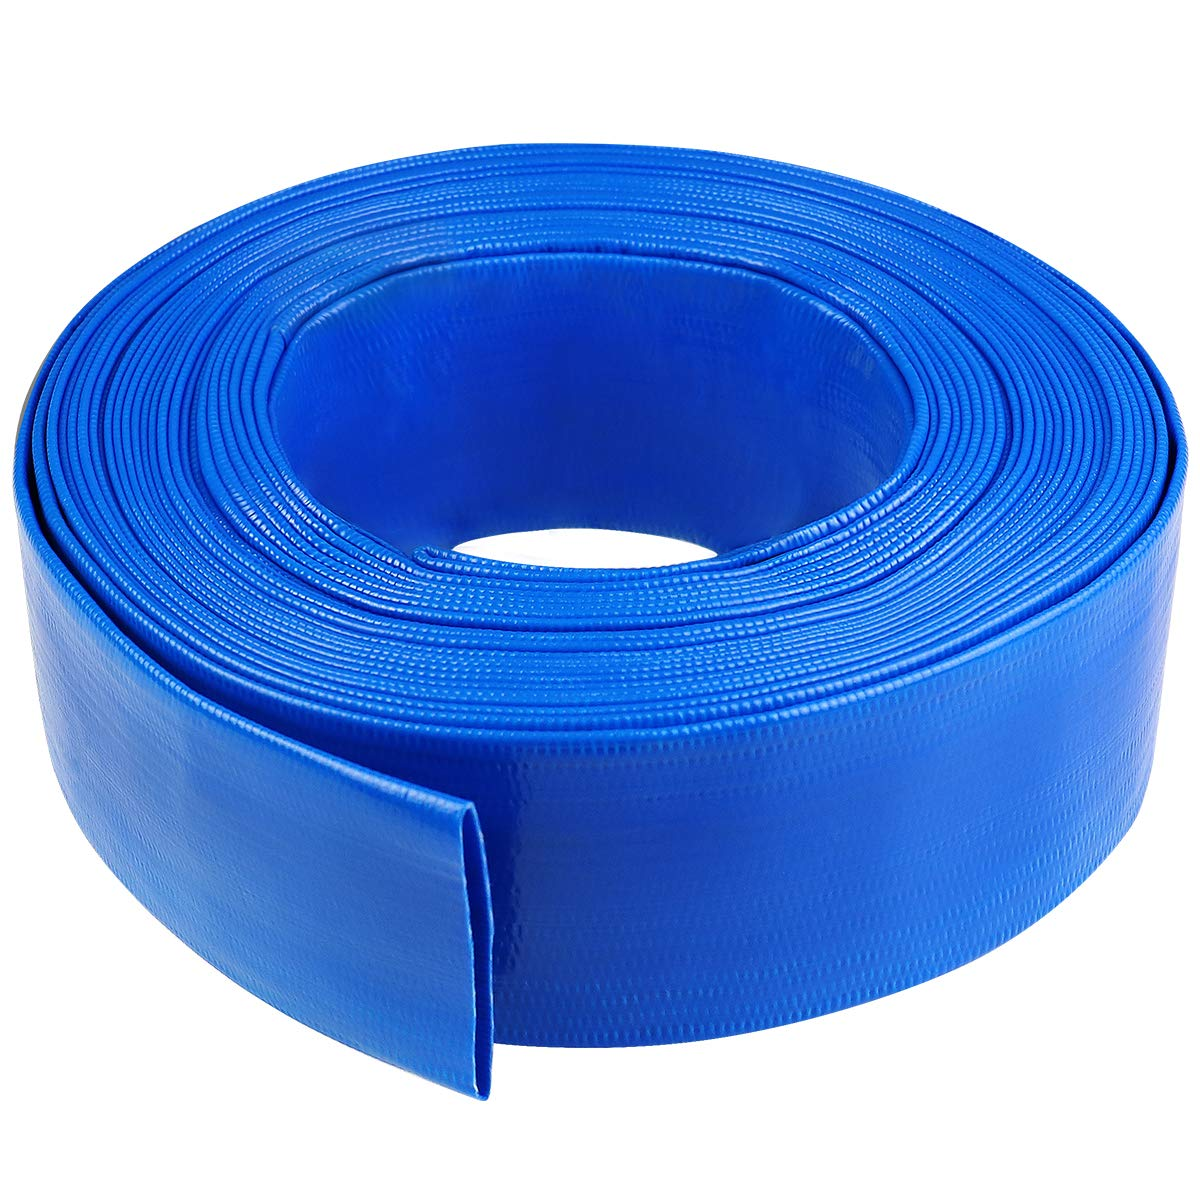 1.5'' x 100 FT Heavy Duty Reinforced PVC Lay Flat Discharge and Backwash Hose for Swimming Pools by Hosetool